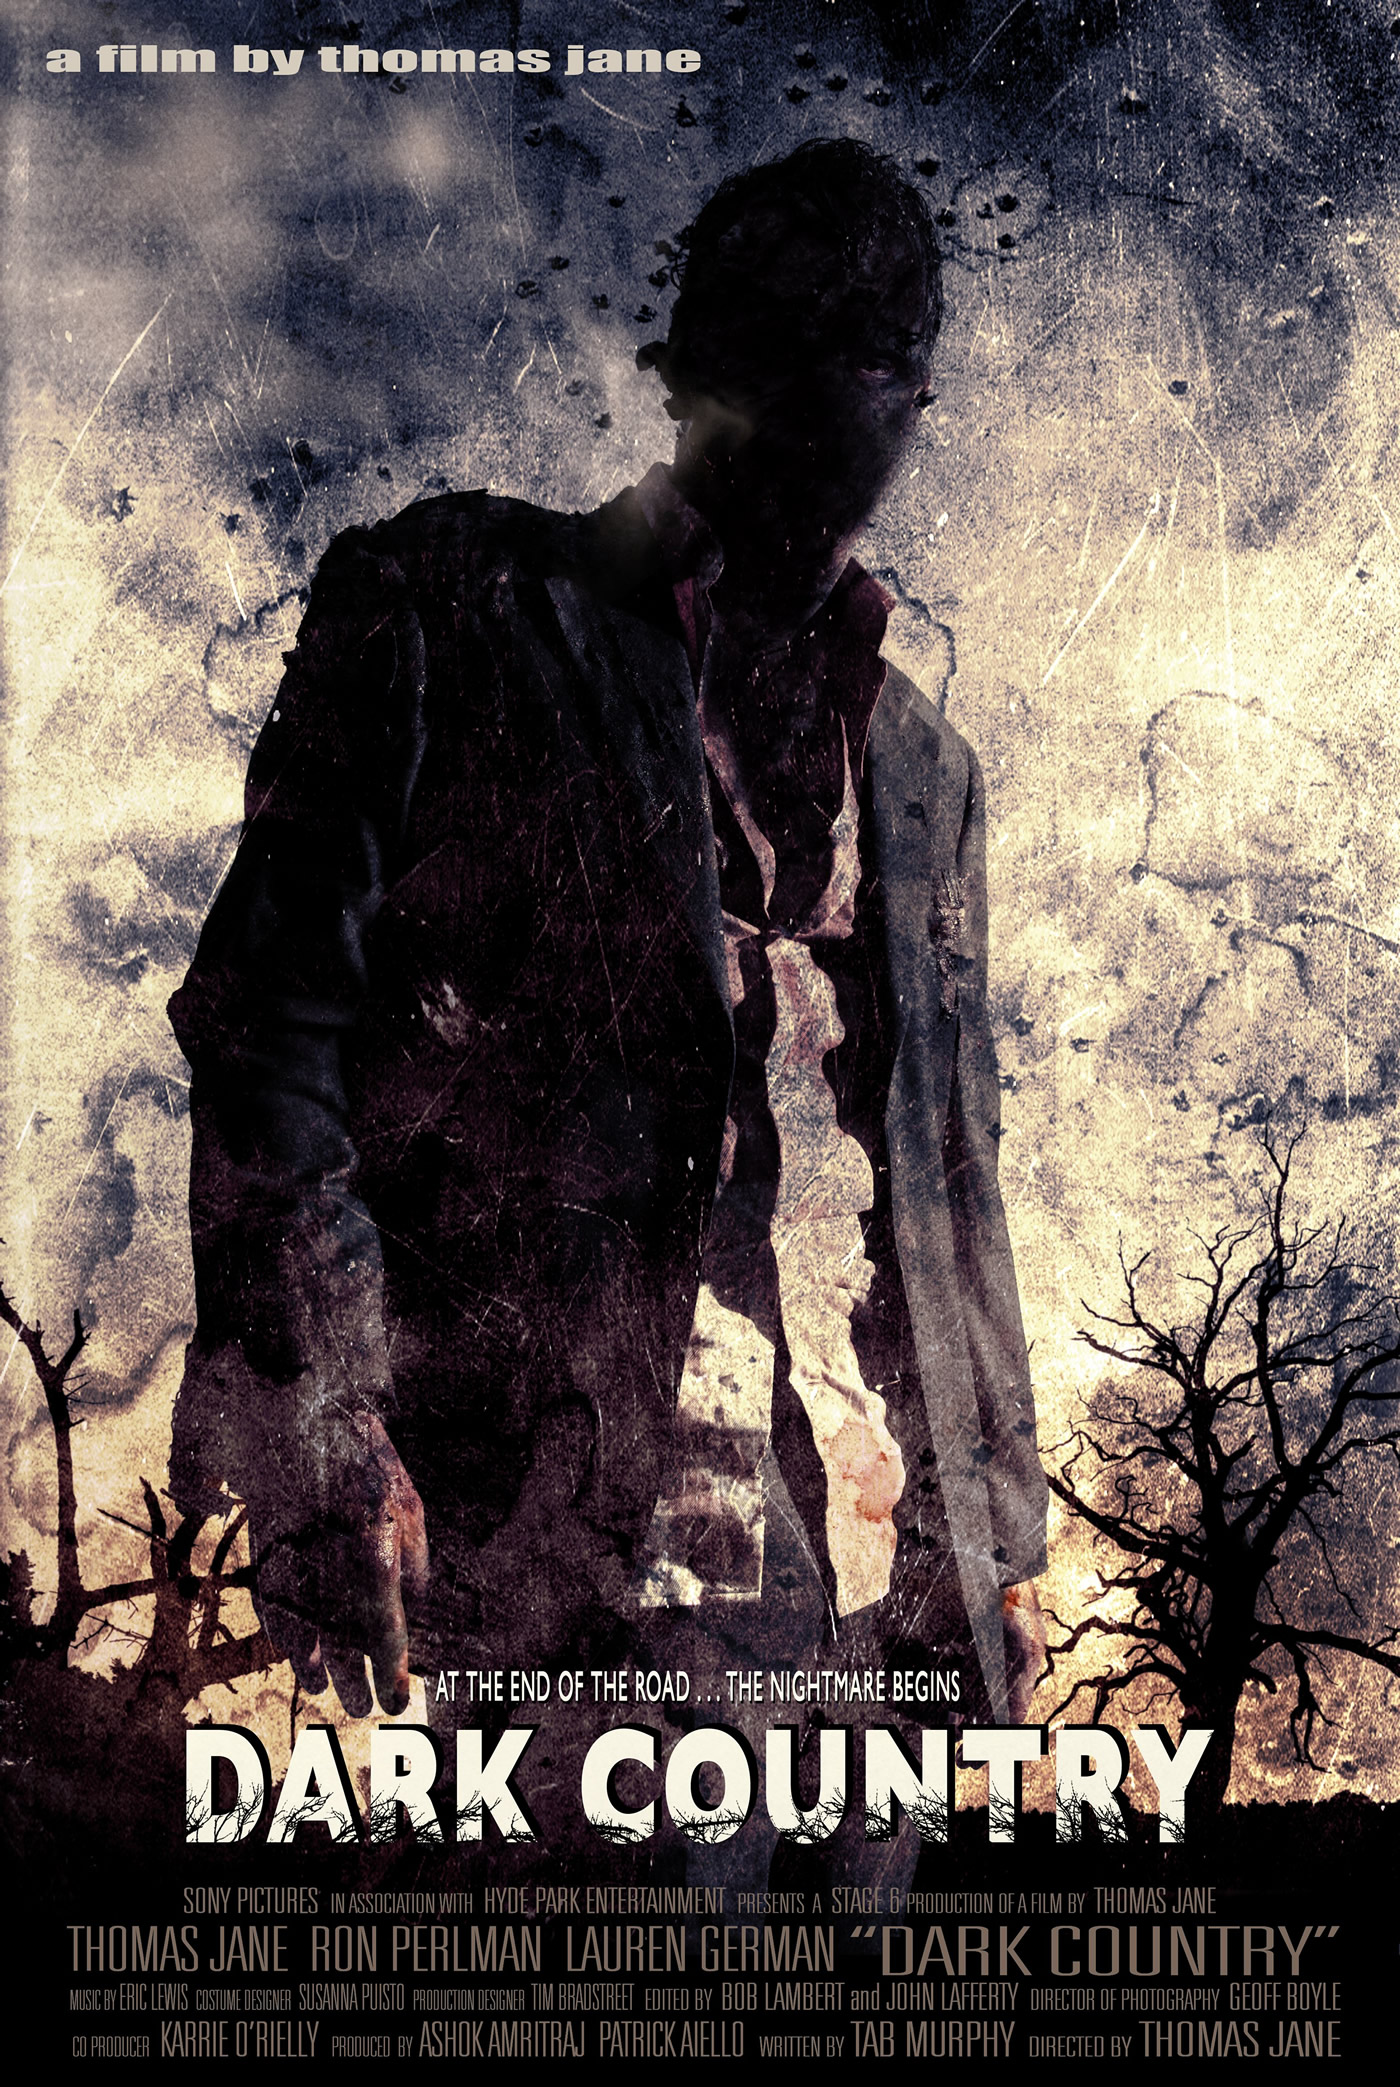 movie poster for thomas janes new film dark country